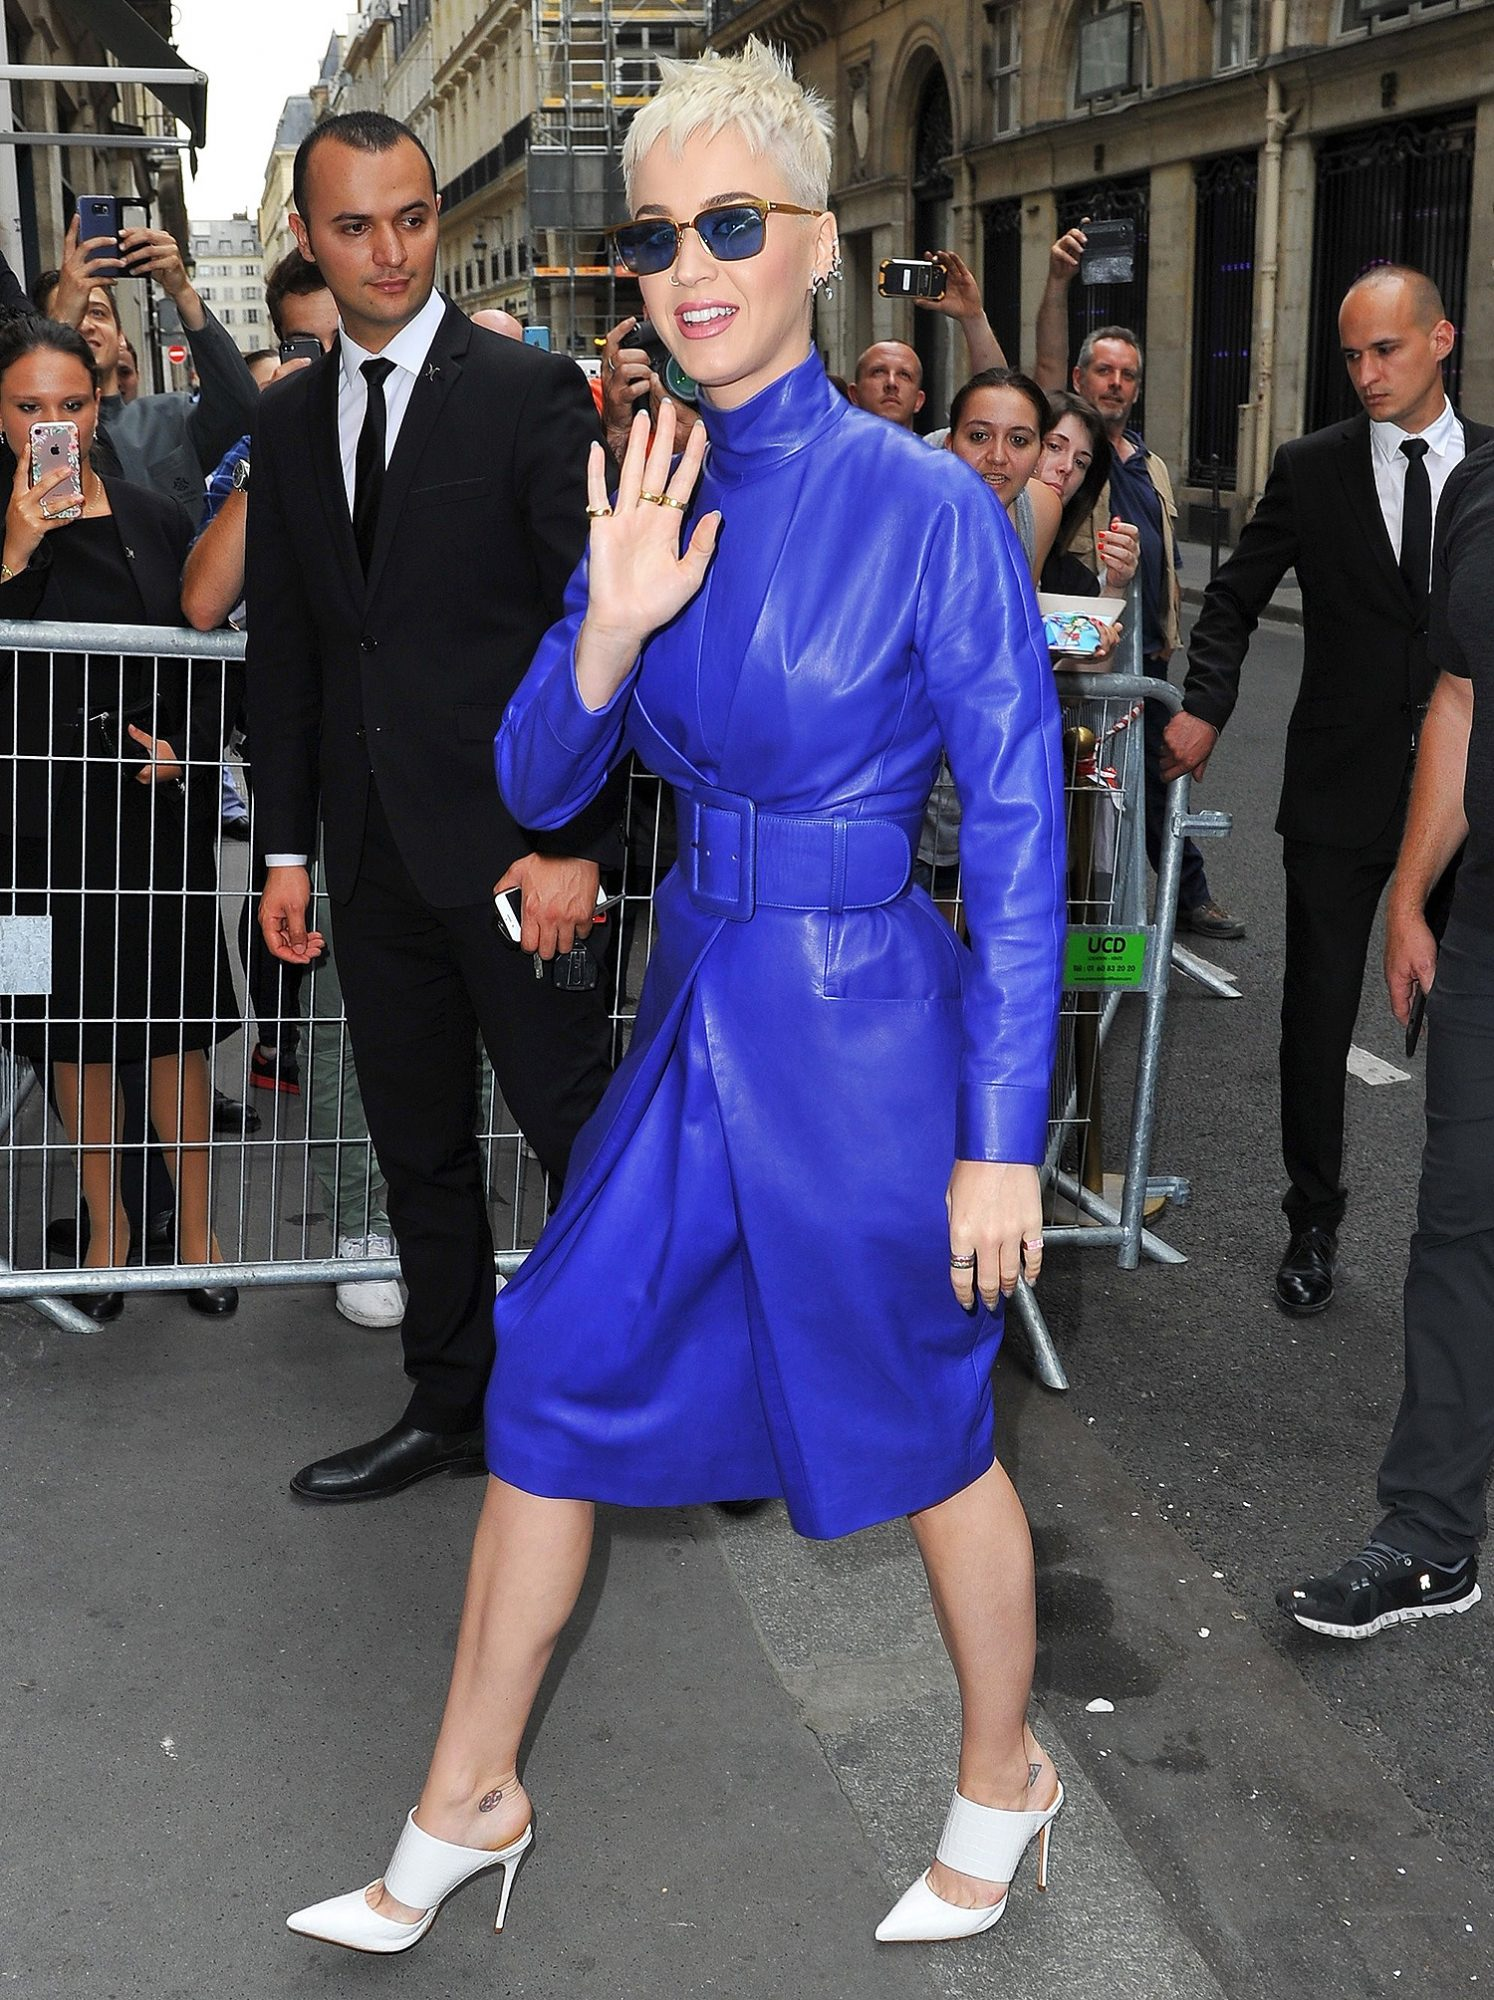 Katy Perry arrives at her hotel in an electric blue dress